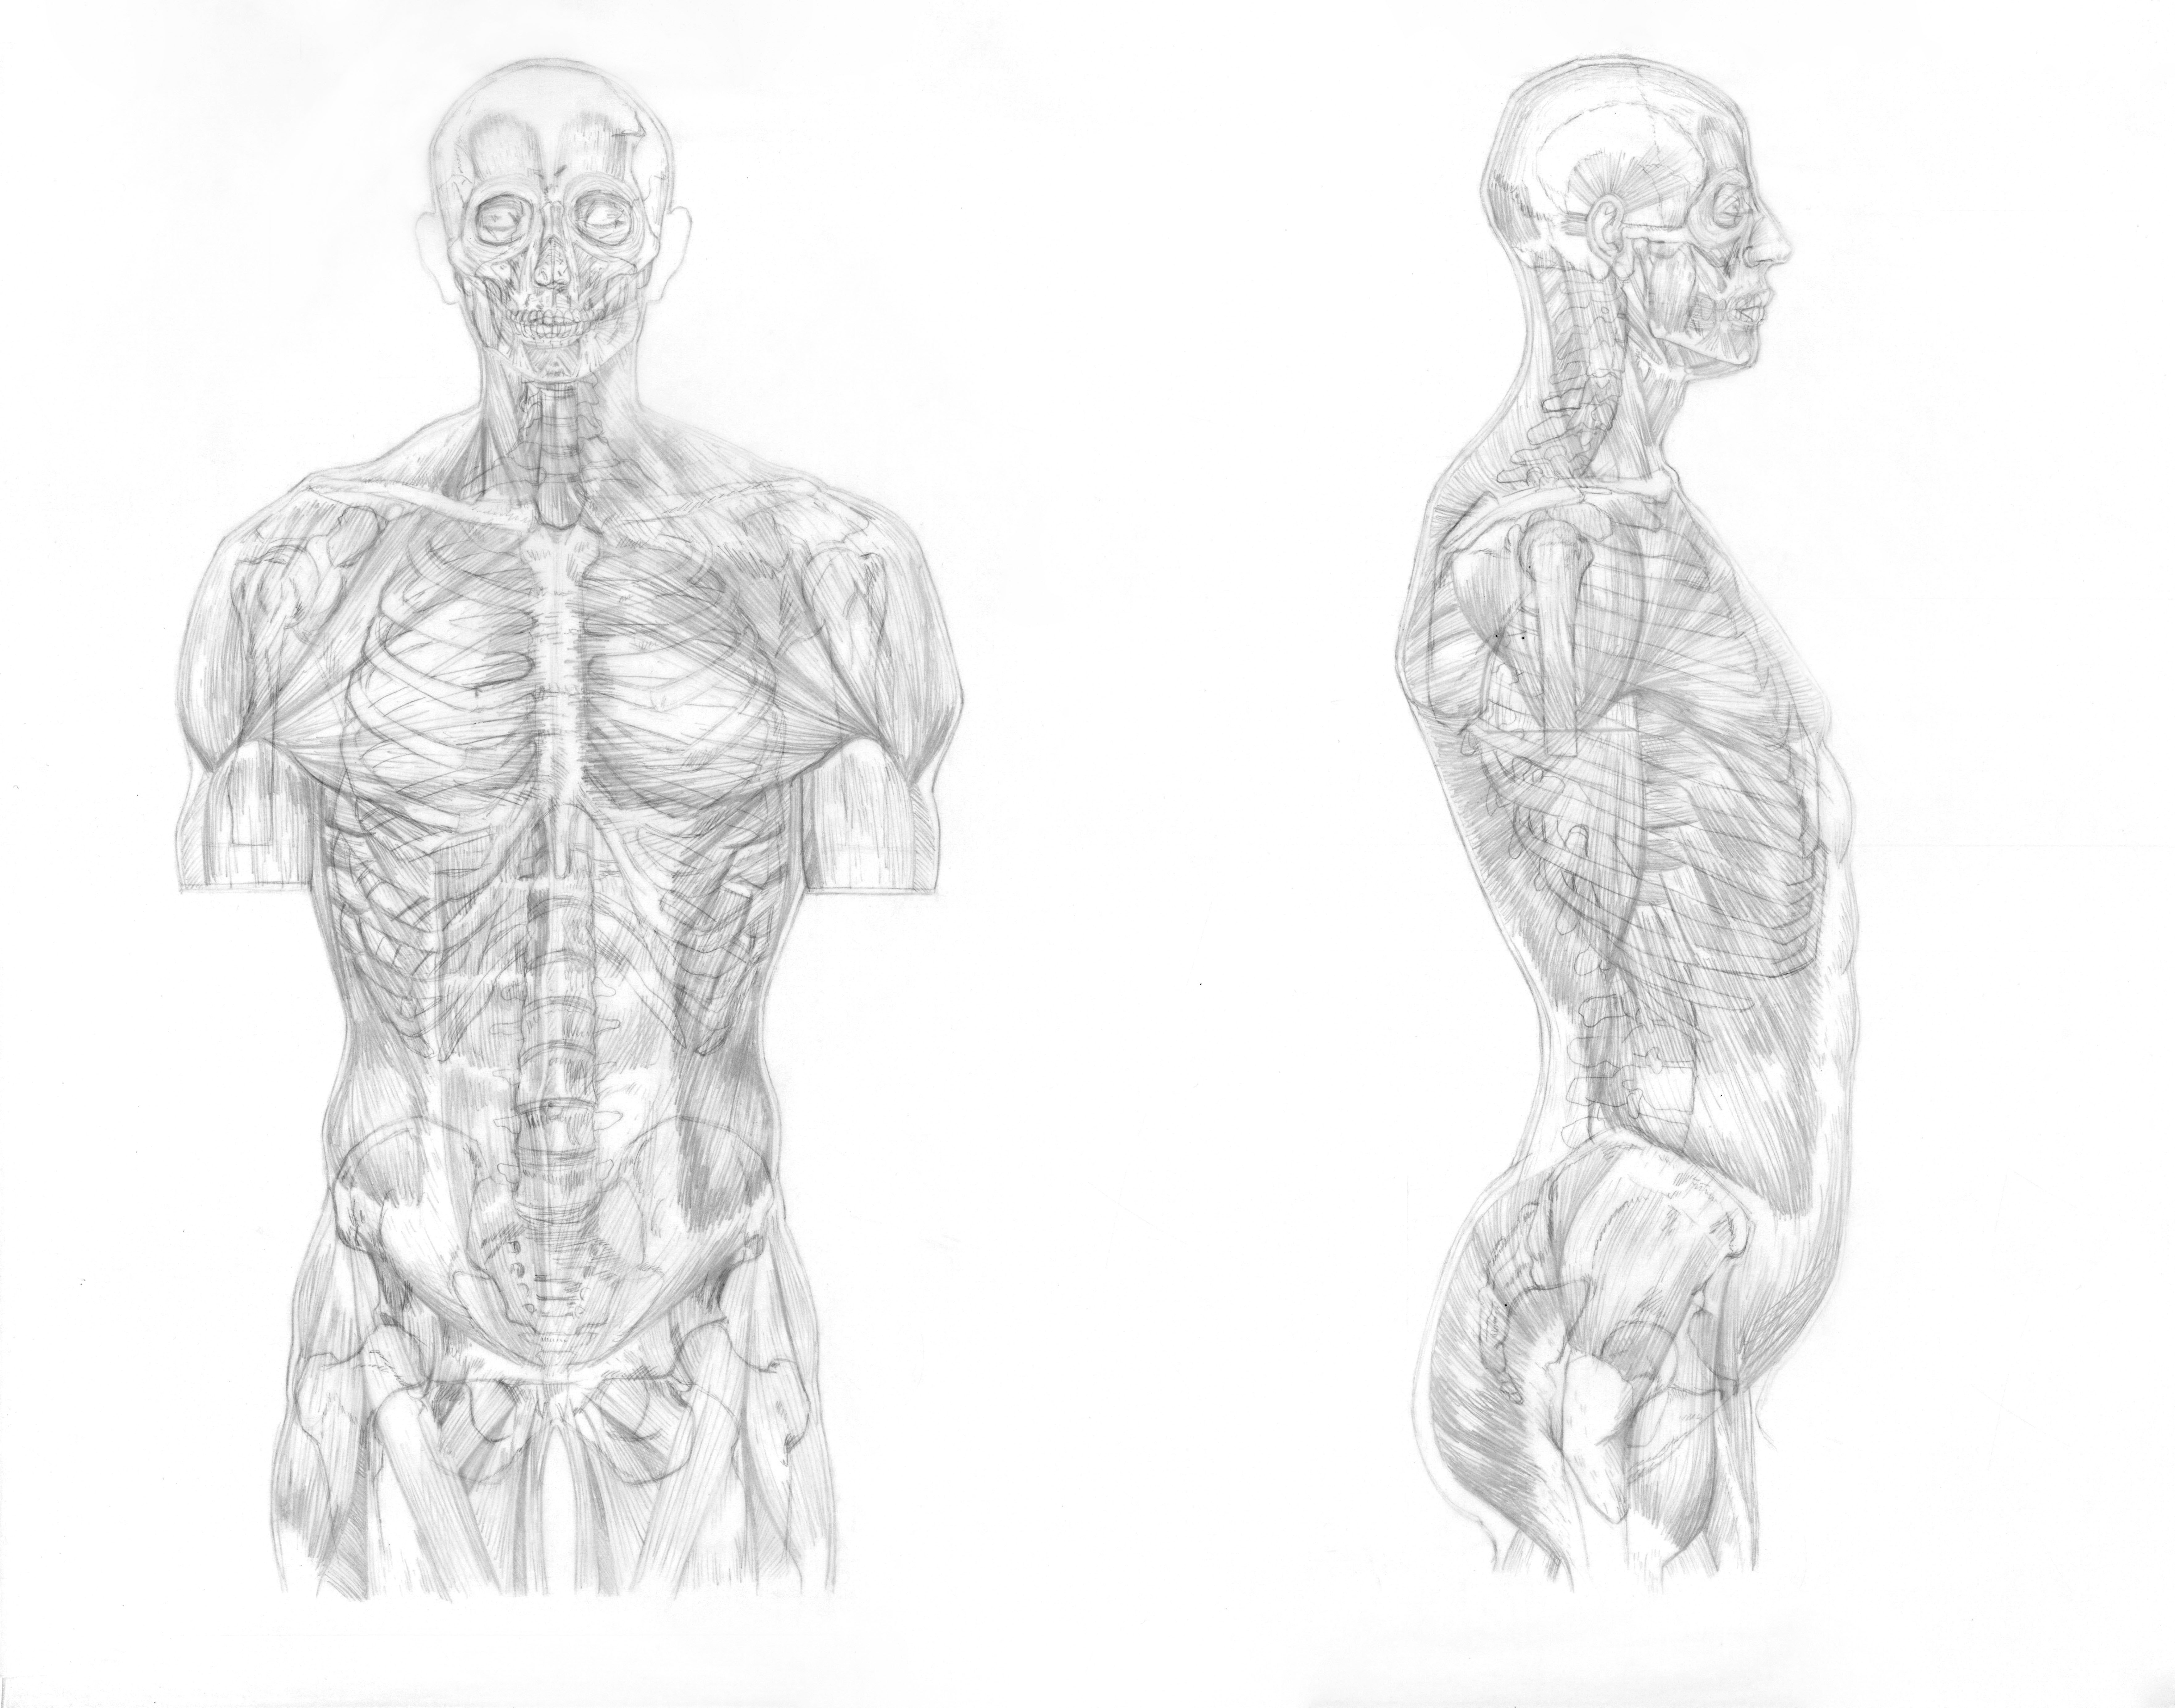 muscle and skeleton overlay